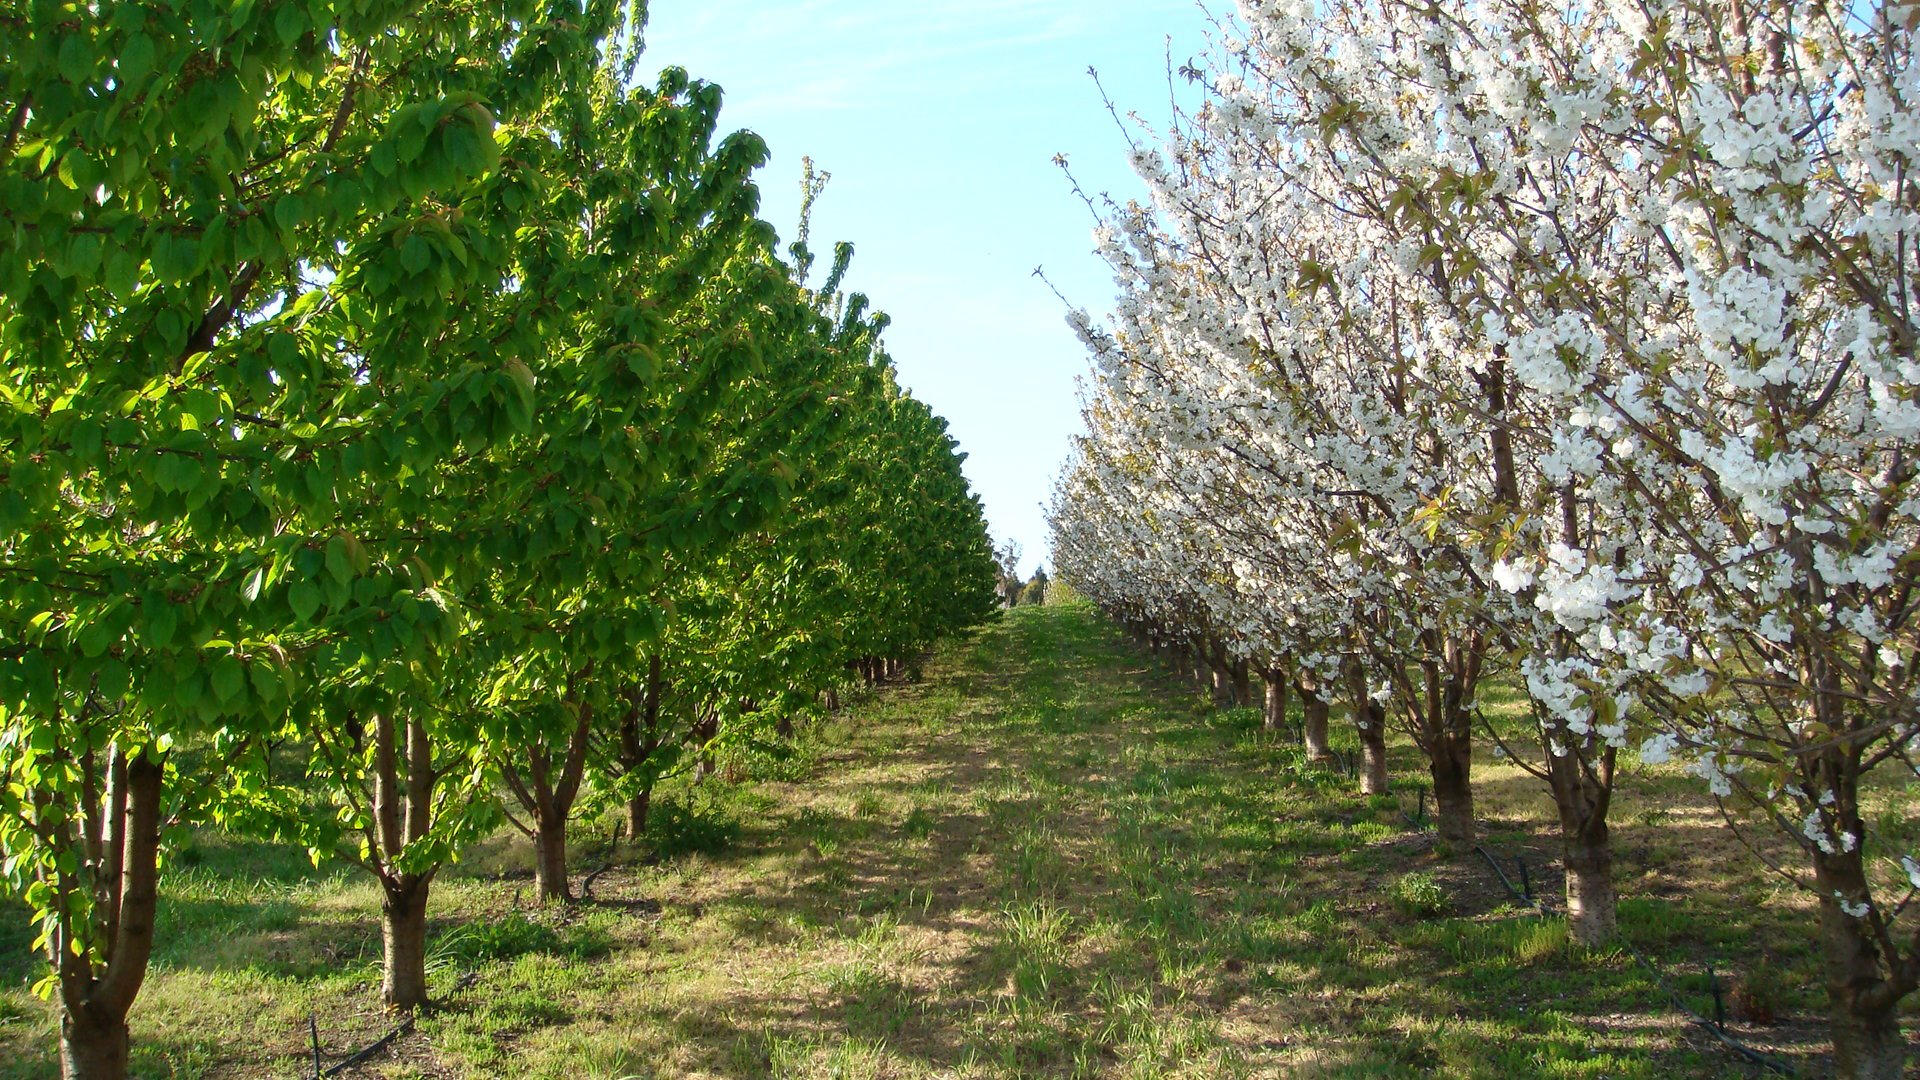 Early variety of cherries in blossom.